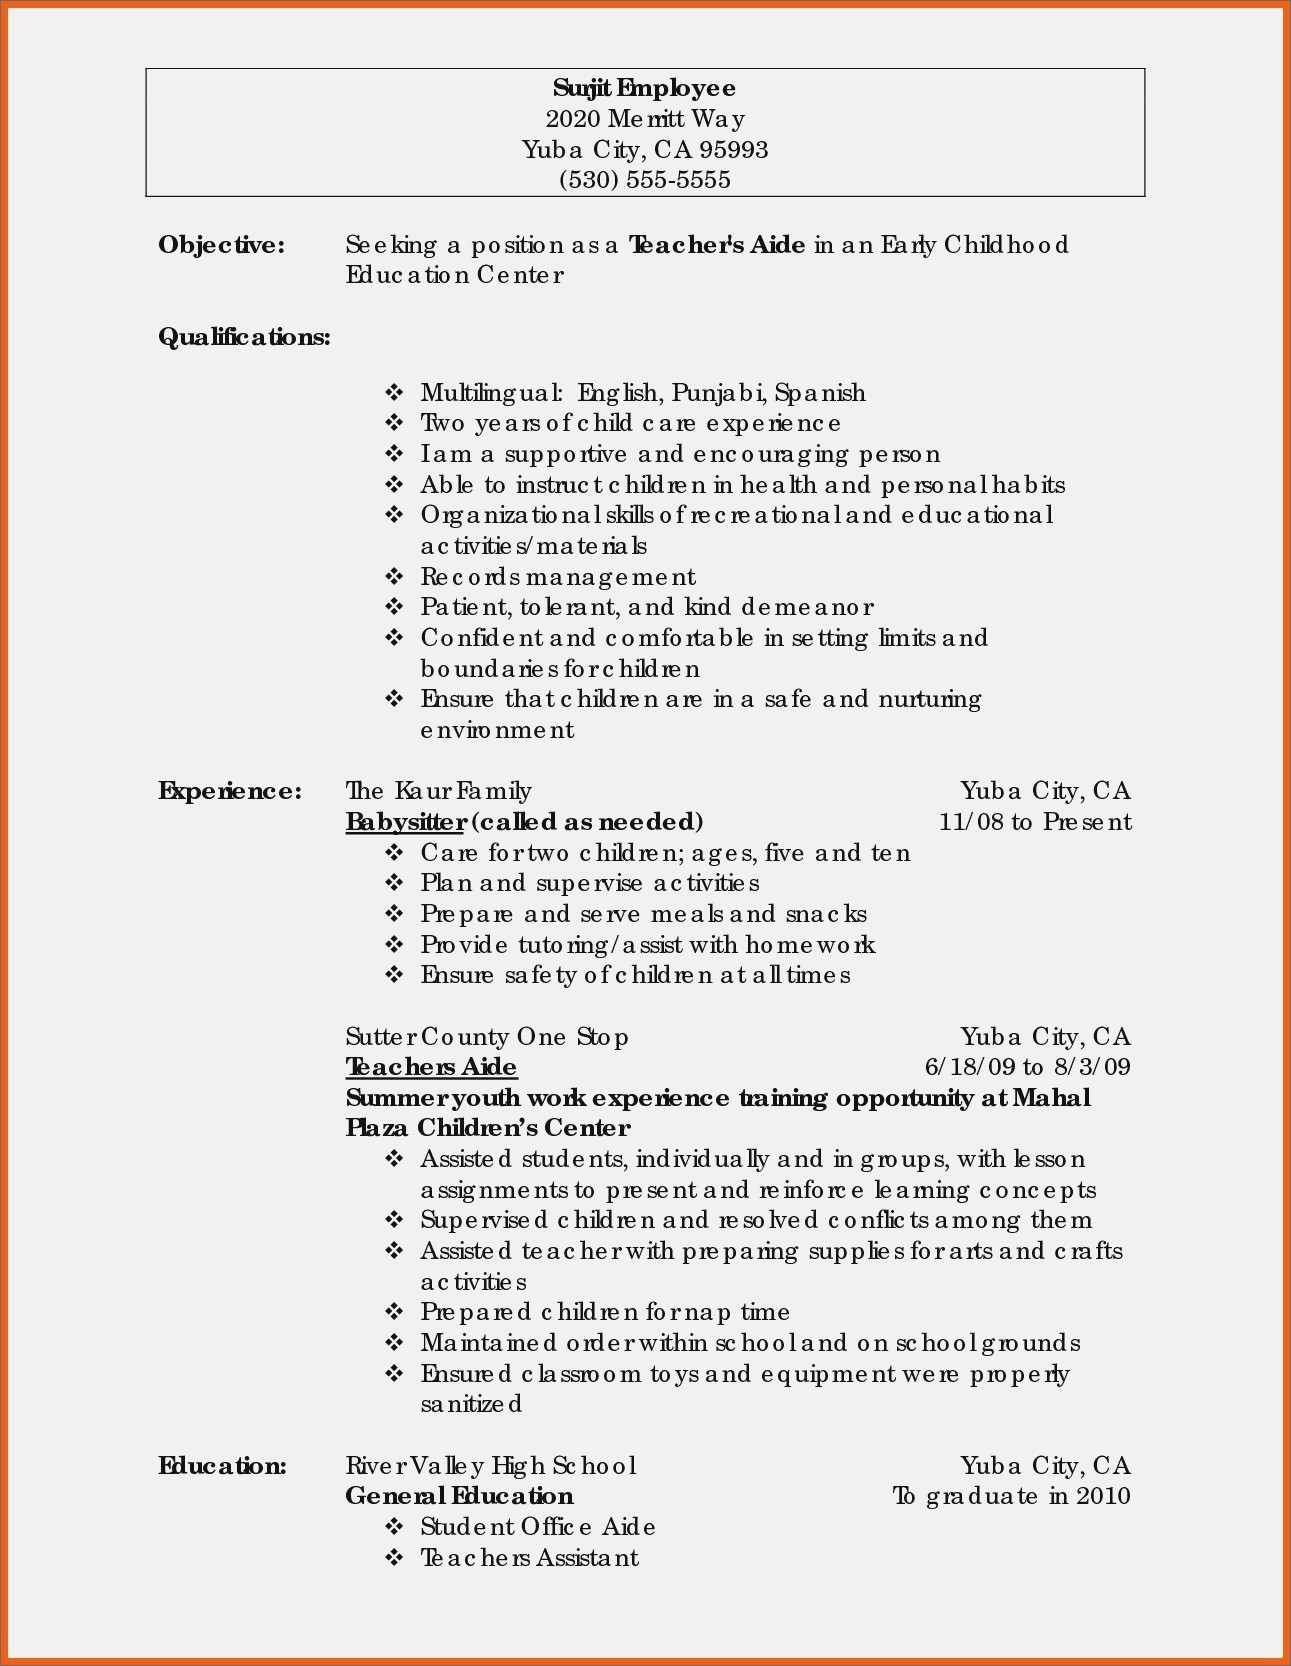 education resume template example-Early Childhood Education Resume Samples New Teacher Resume Example Awesome Resume Examples 0d Skills Examples 4-f